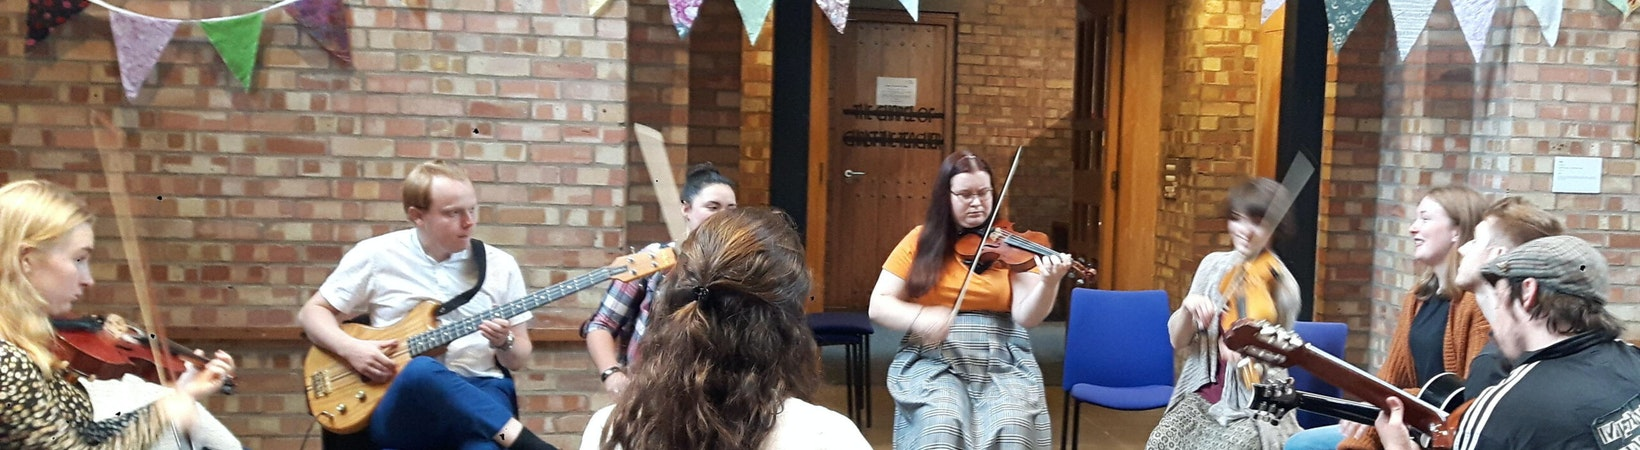 A week of Ethno music in York